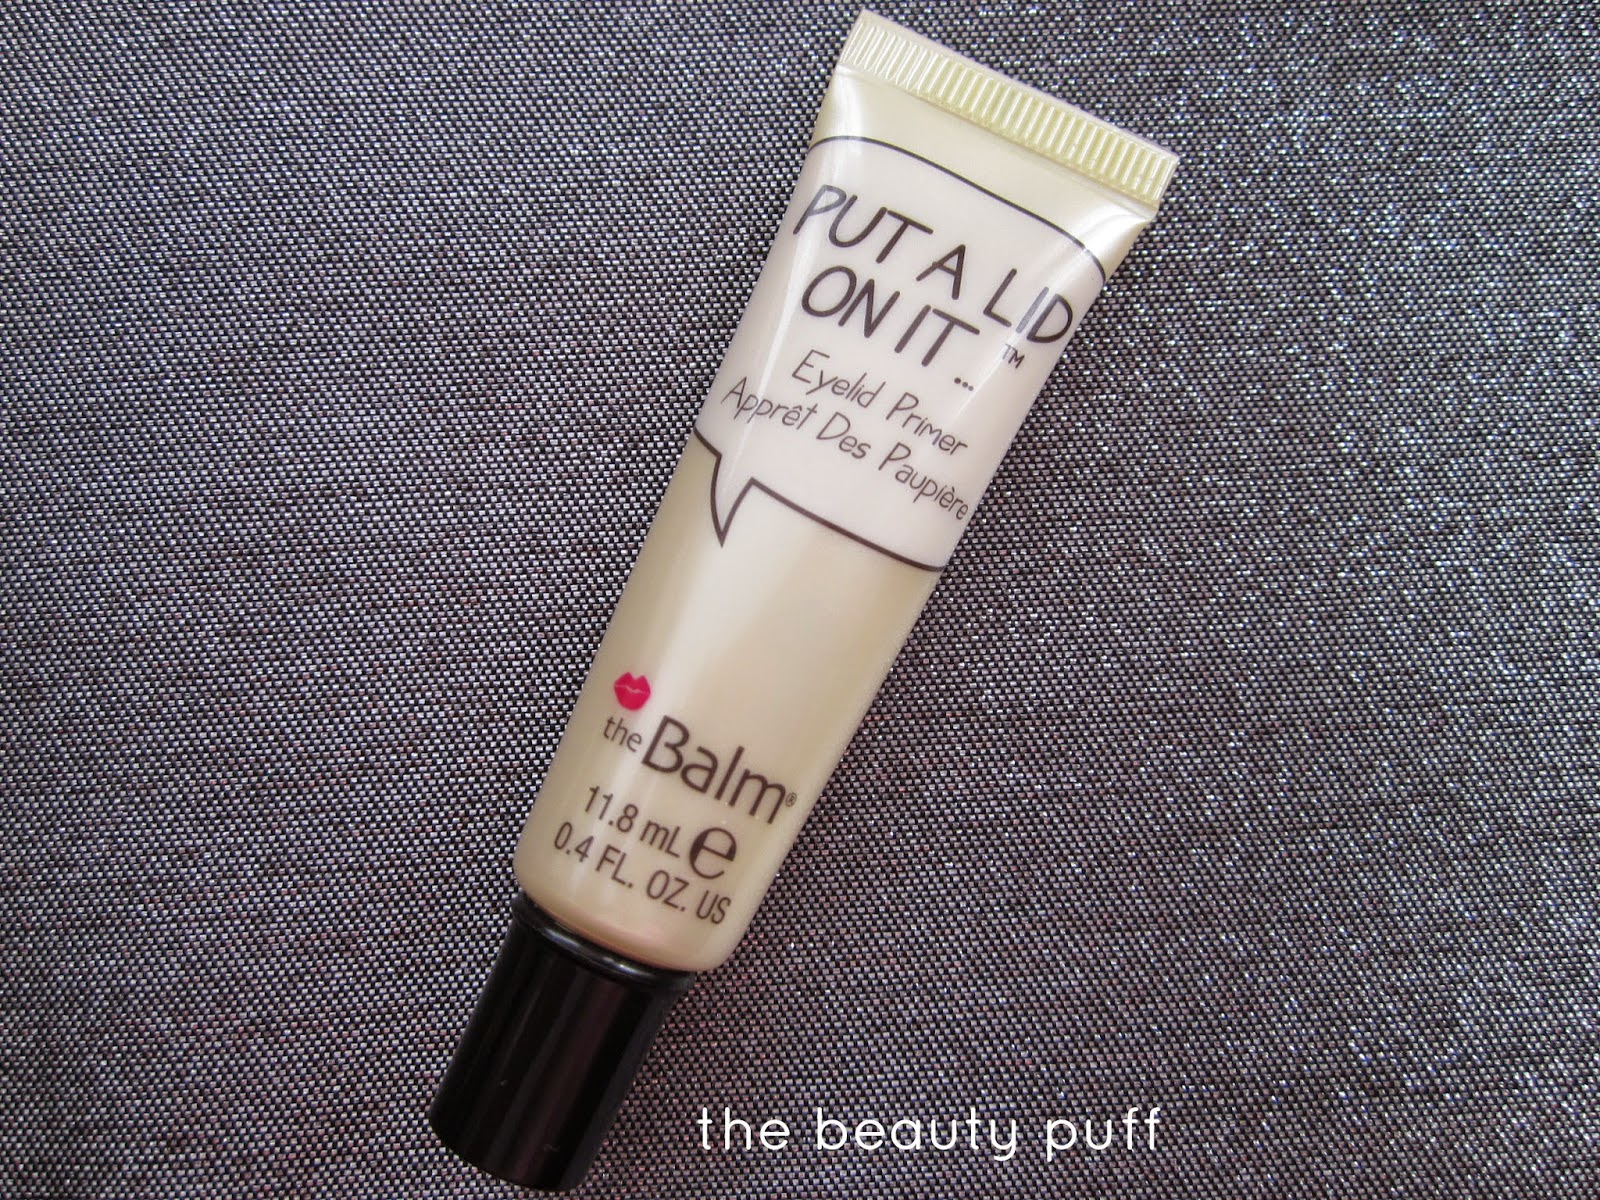 thebalm put a lid on it eye primer - the beauty puff